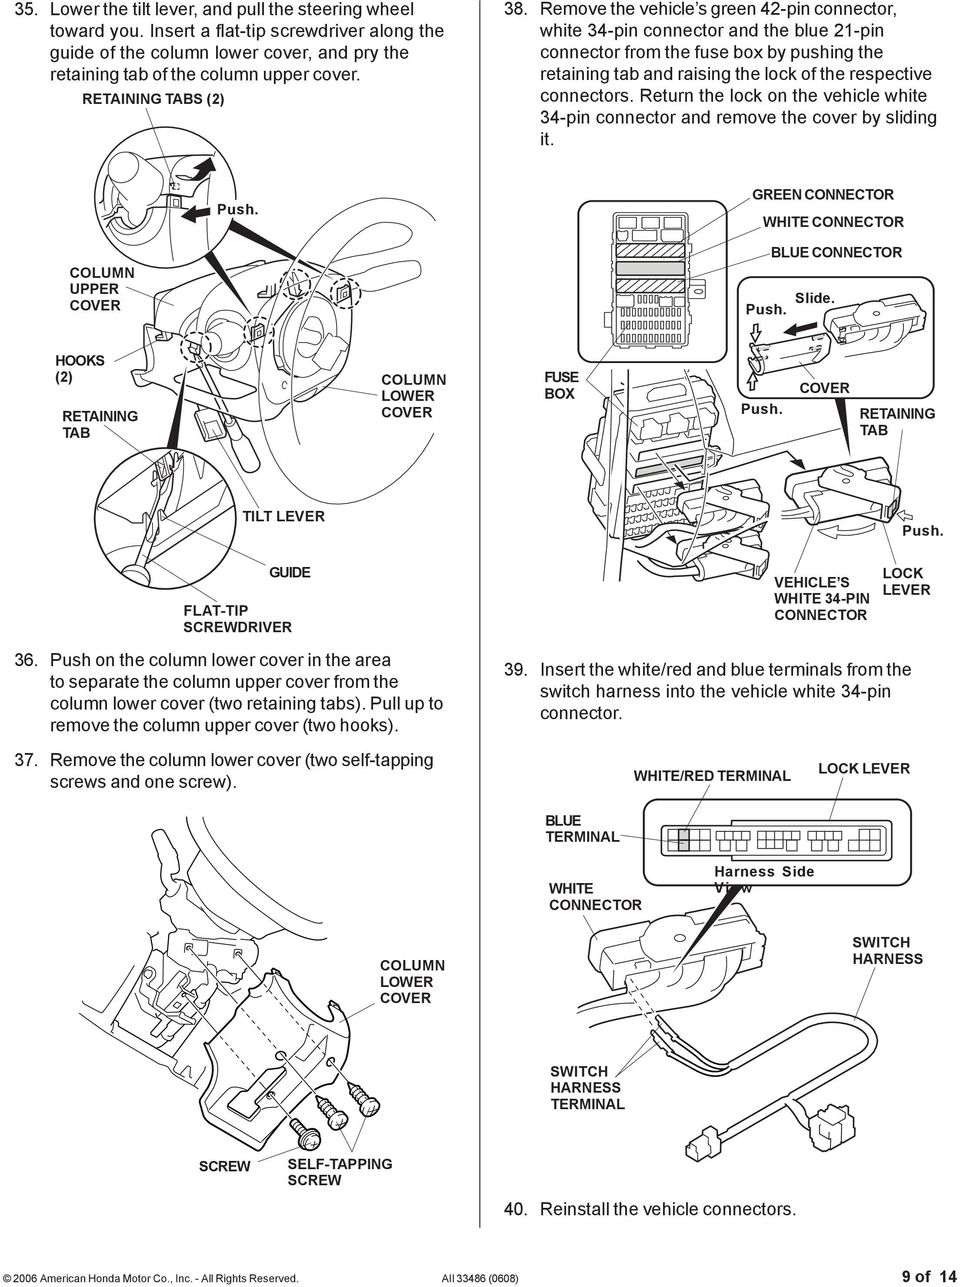 Installation Instructions Pdf Toyota Pickup Fuse Box Removal Remove The Vehicle S Green 42 Pin Connector White 34 And